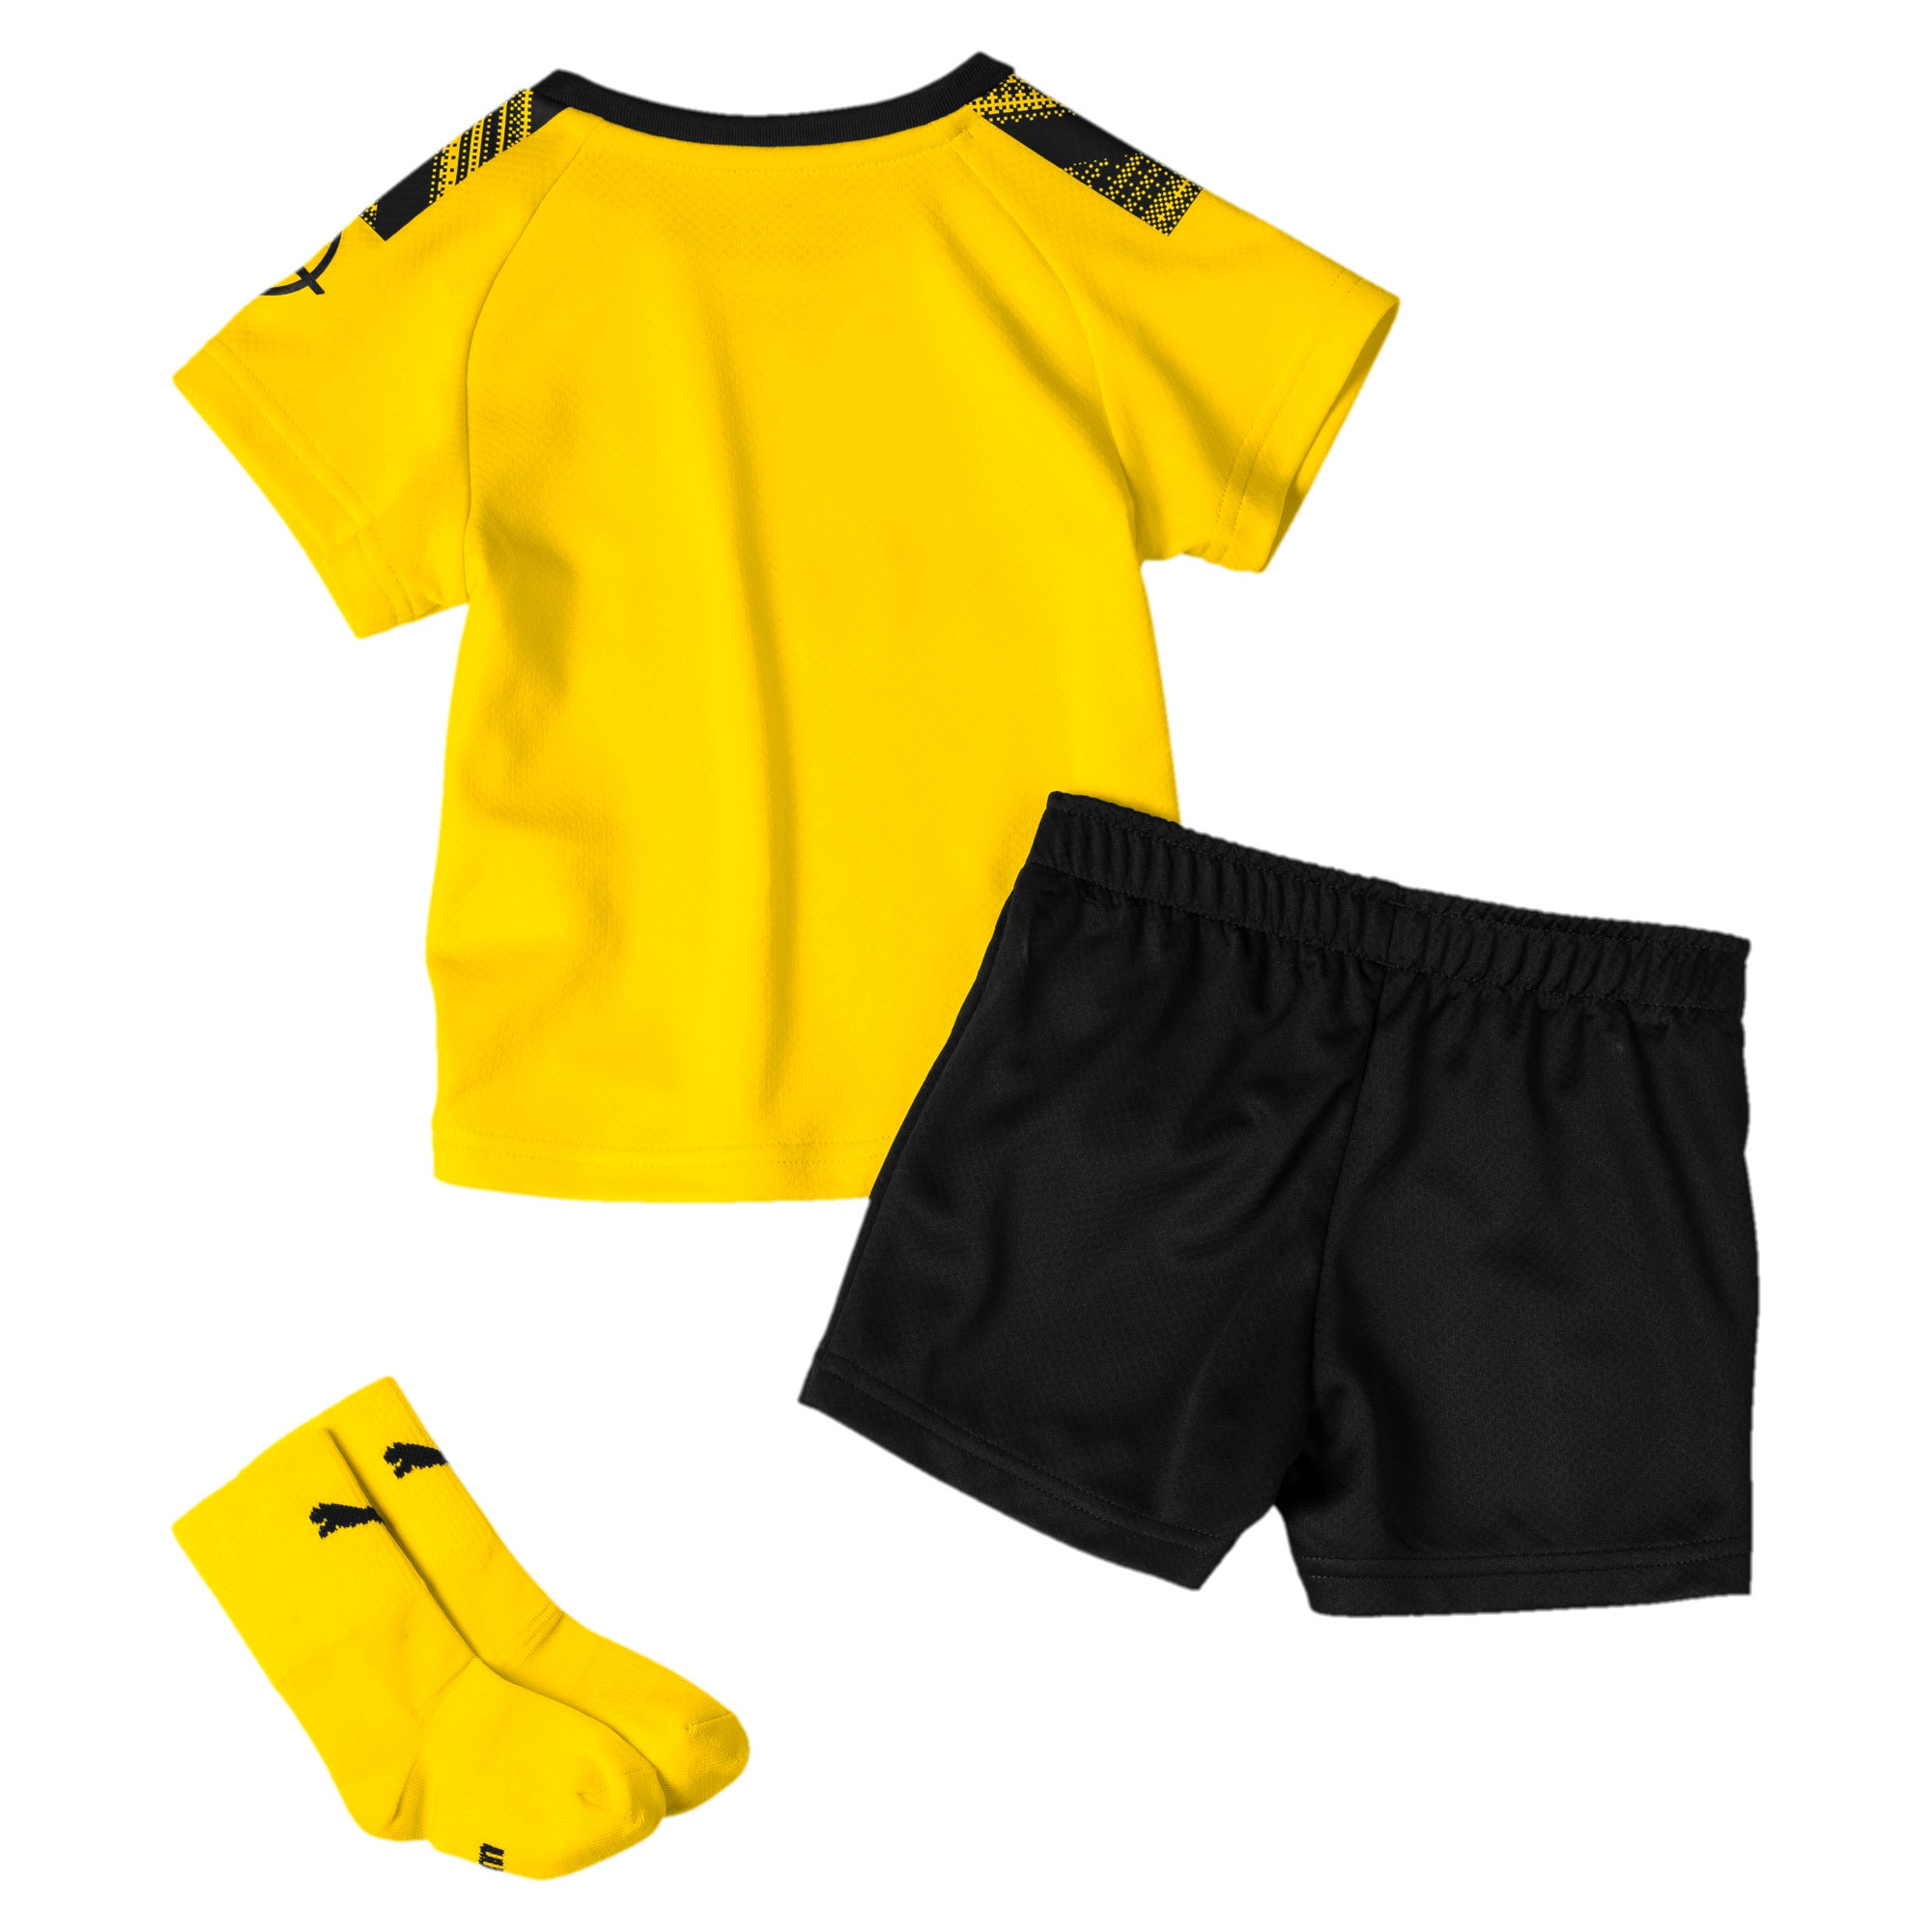 Thumbnail 2 of BVB Babies' Home Mini Kit, Cyber Yellow-Puma Black, medium